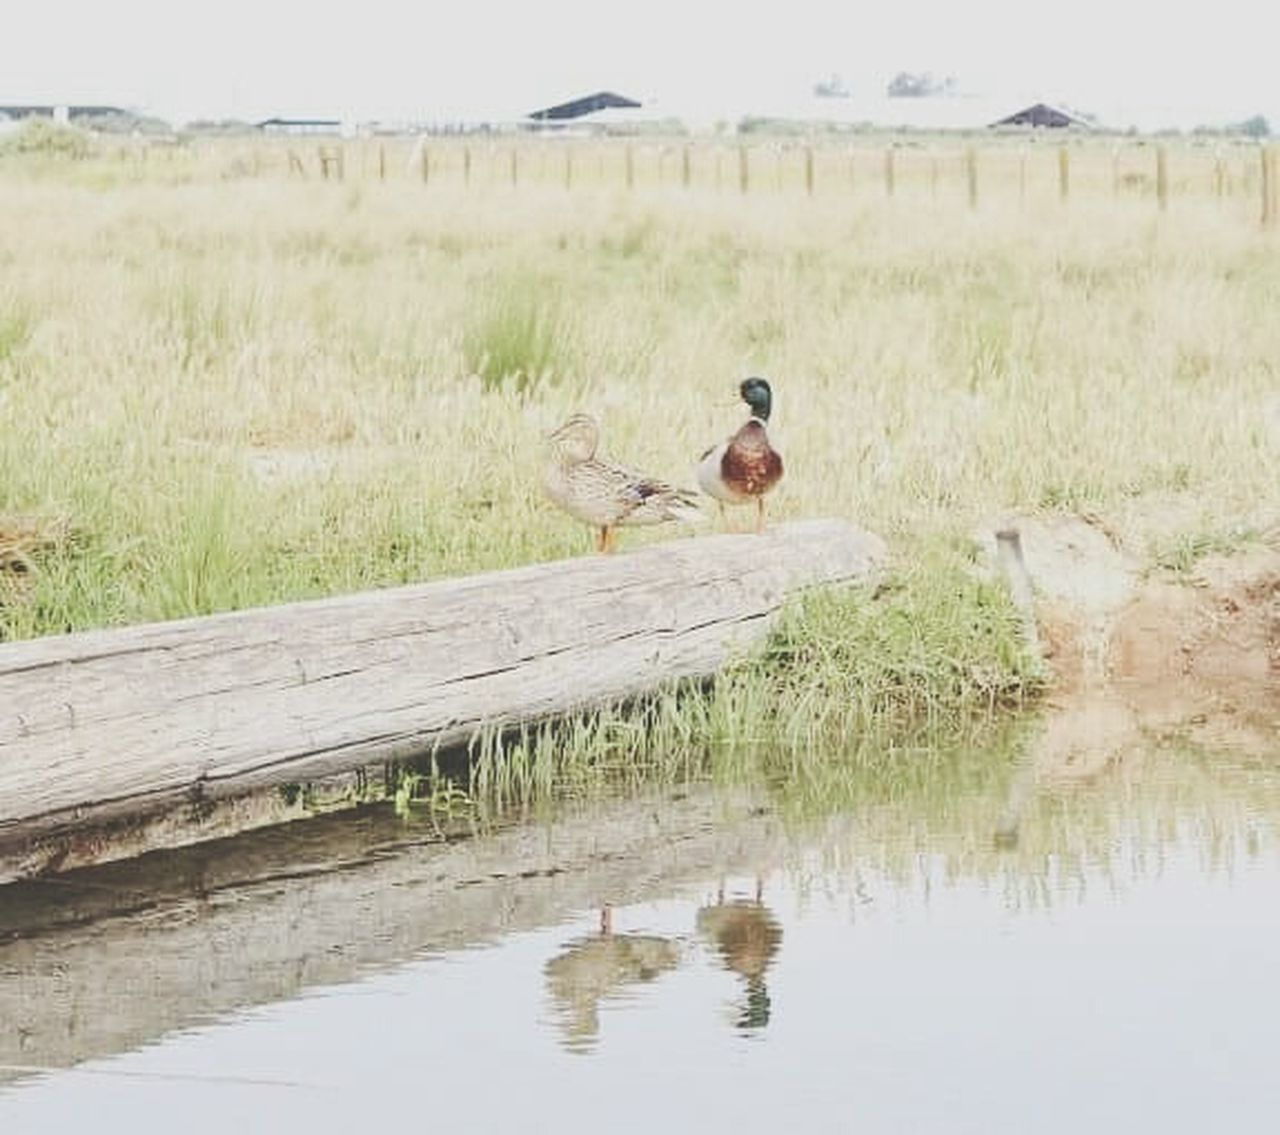 one animal, water, reflection, outdoors, day, animal wildlife, animal themes, animals in the wild, nature, grass, no people, bird, pets, mammal, sky